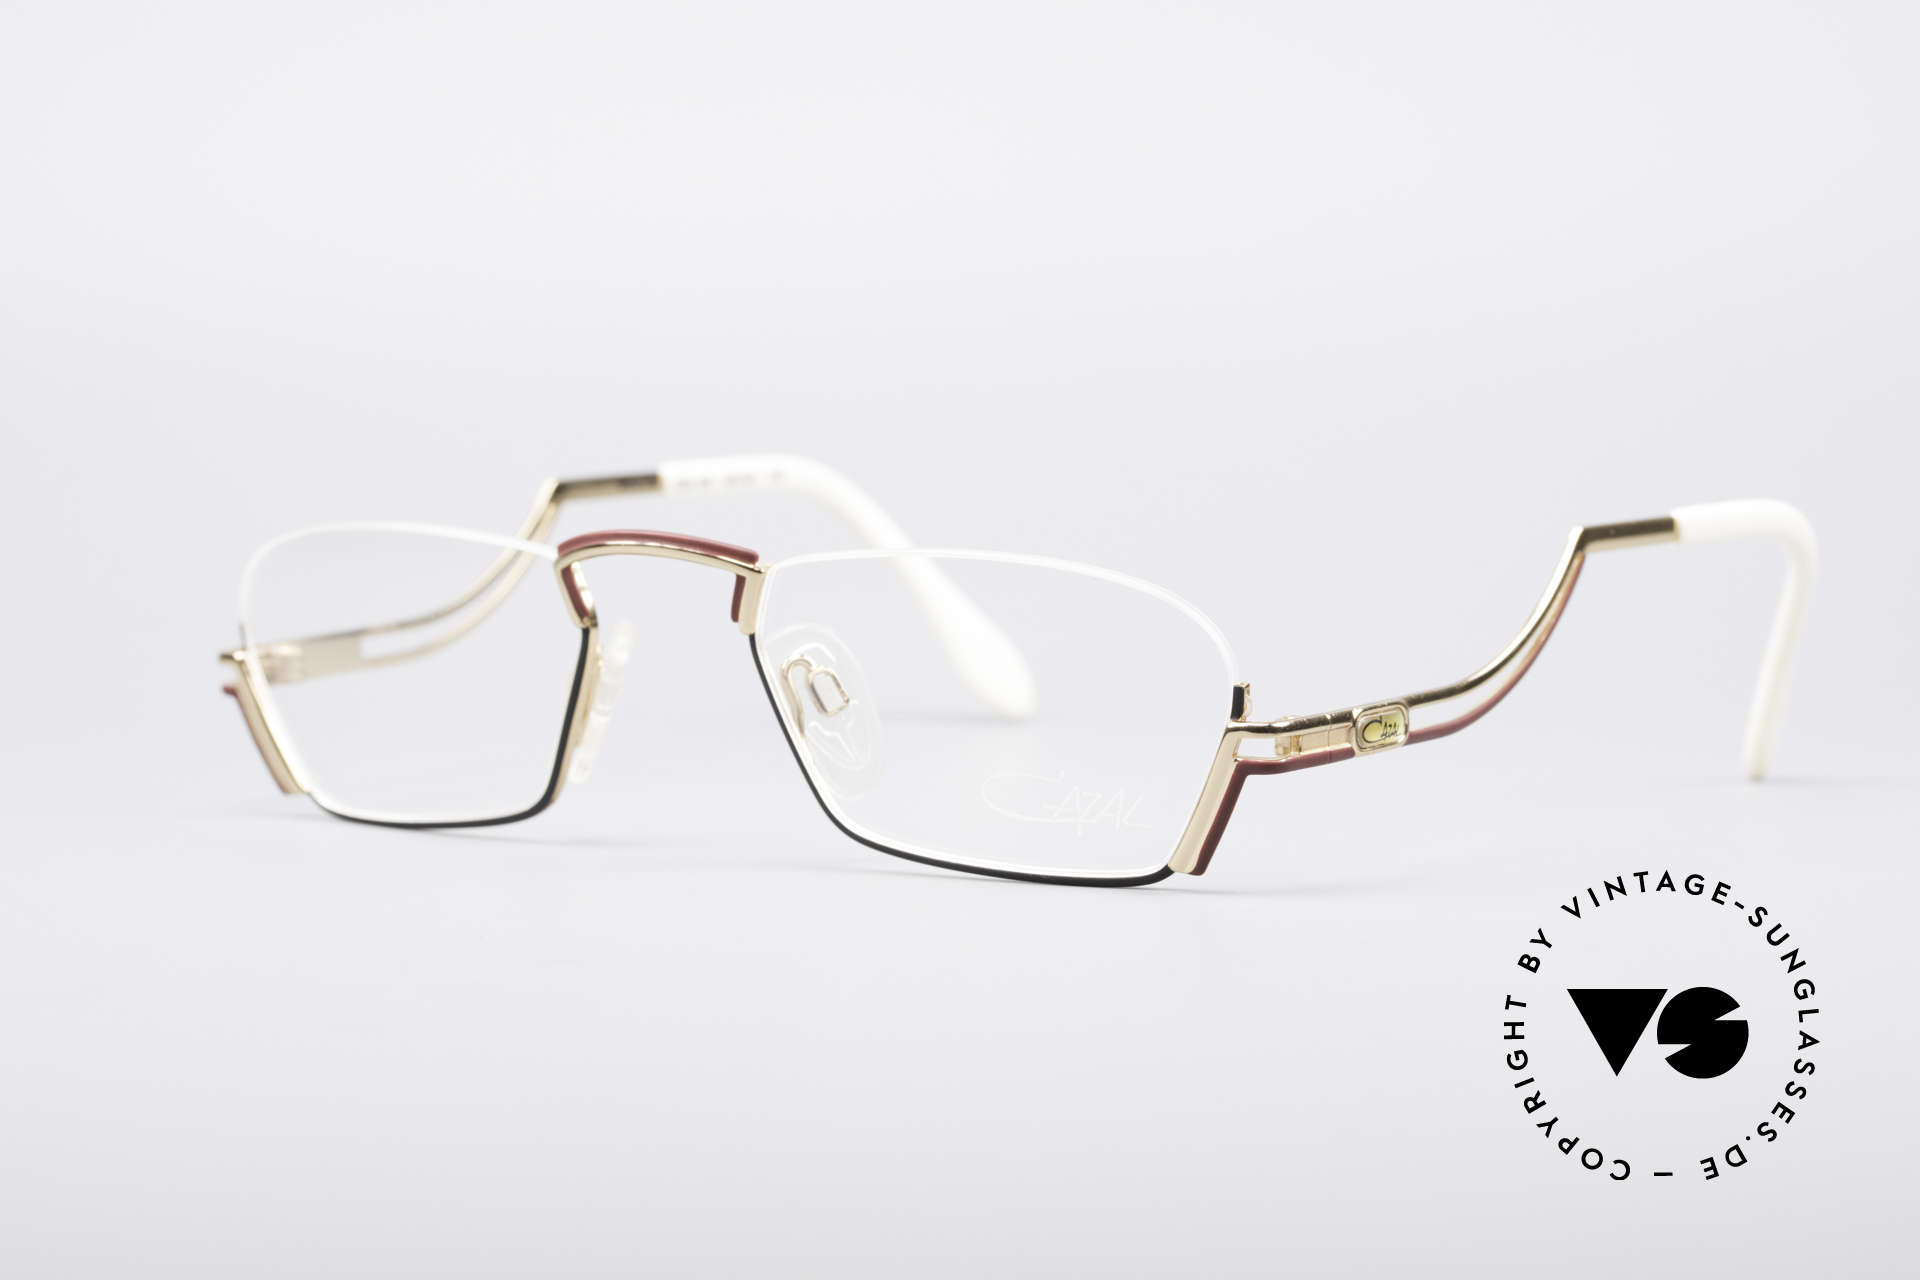 Cazal 232 Vintage Reading Eyeglasses, unique coloring and shape (just fancy & true vintage), Made for Men and Women